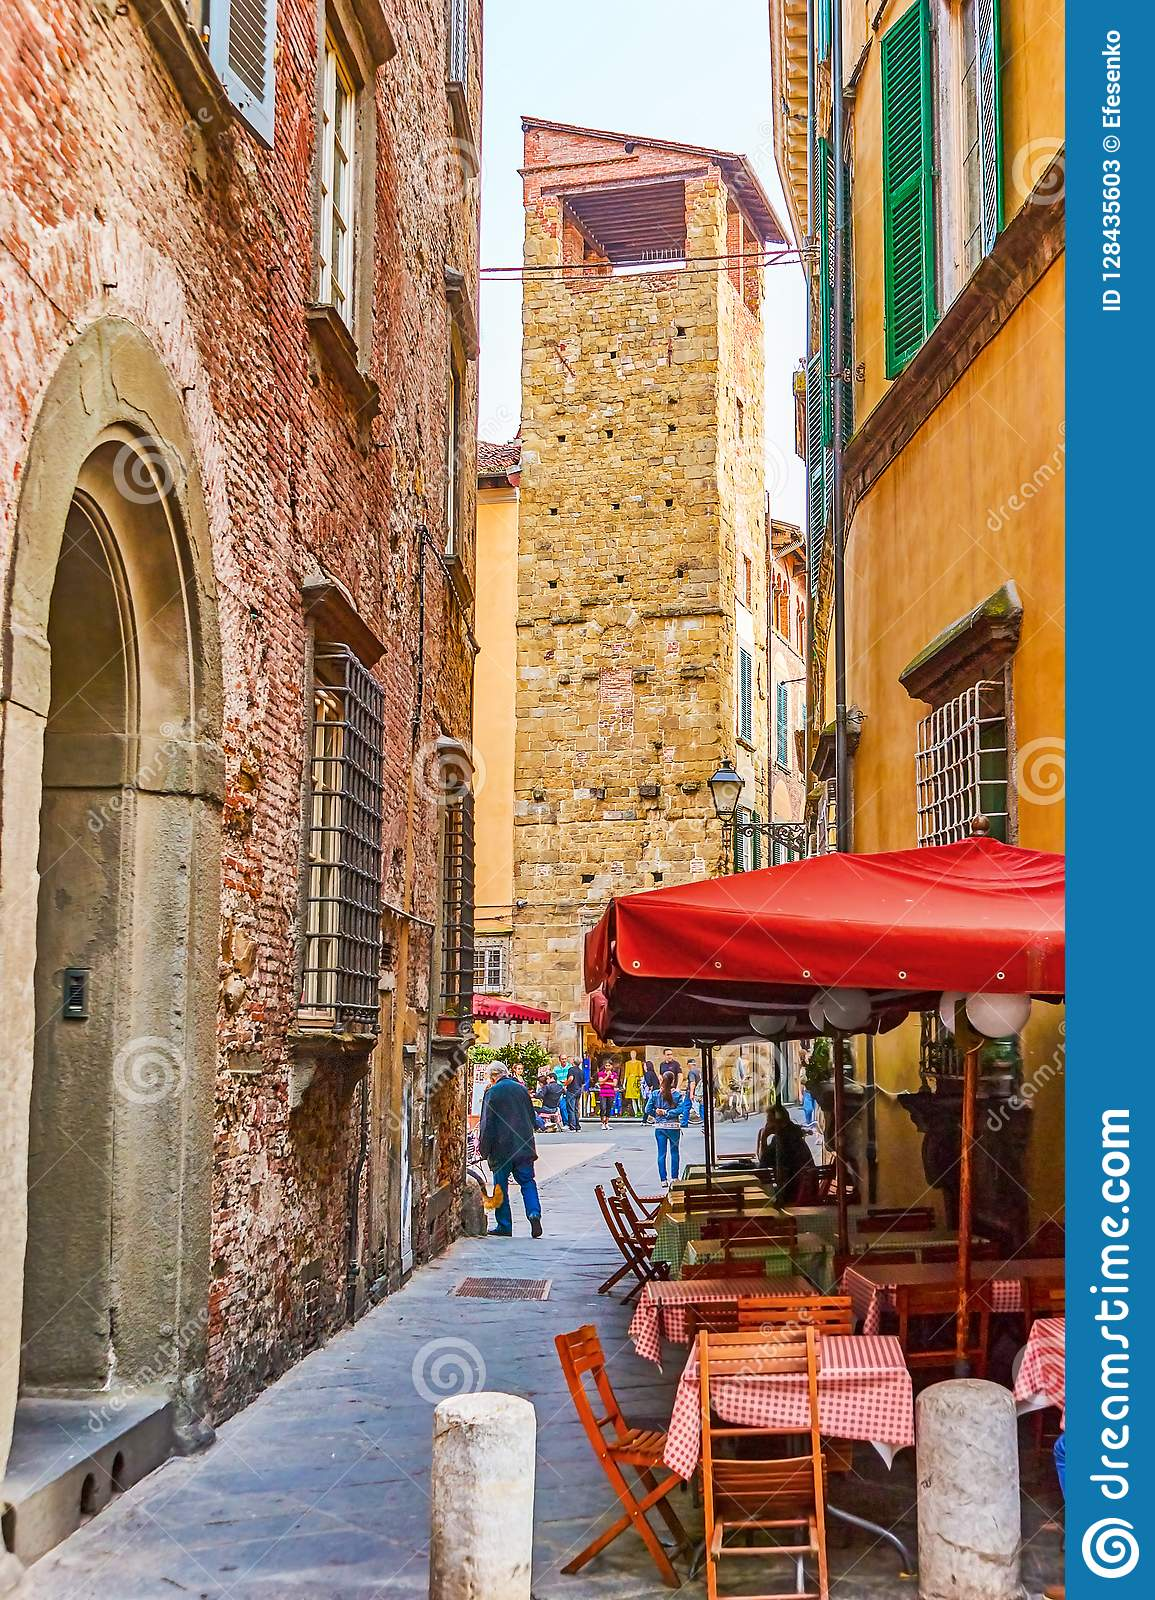 The Small Outdoor Cafe In Lucca Italy Editorial Stock Photo Image Of Restaurant Outdoor 128435603